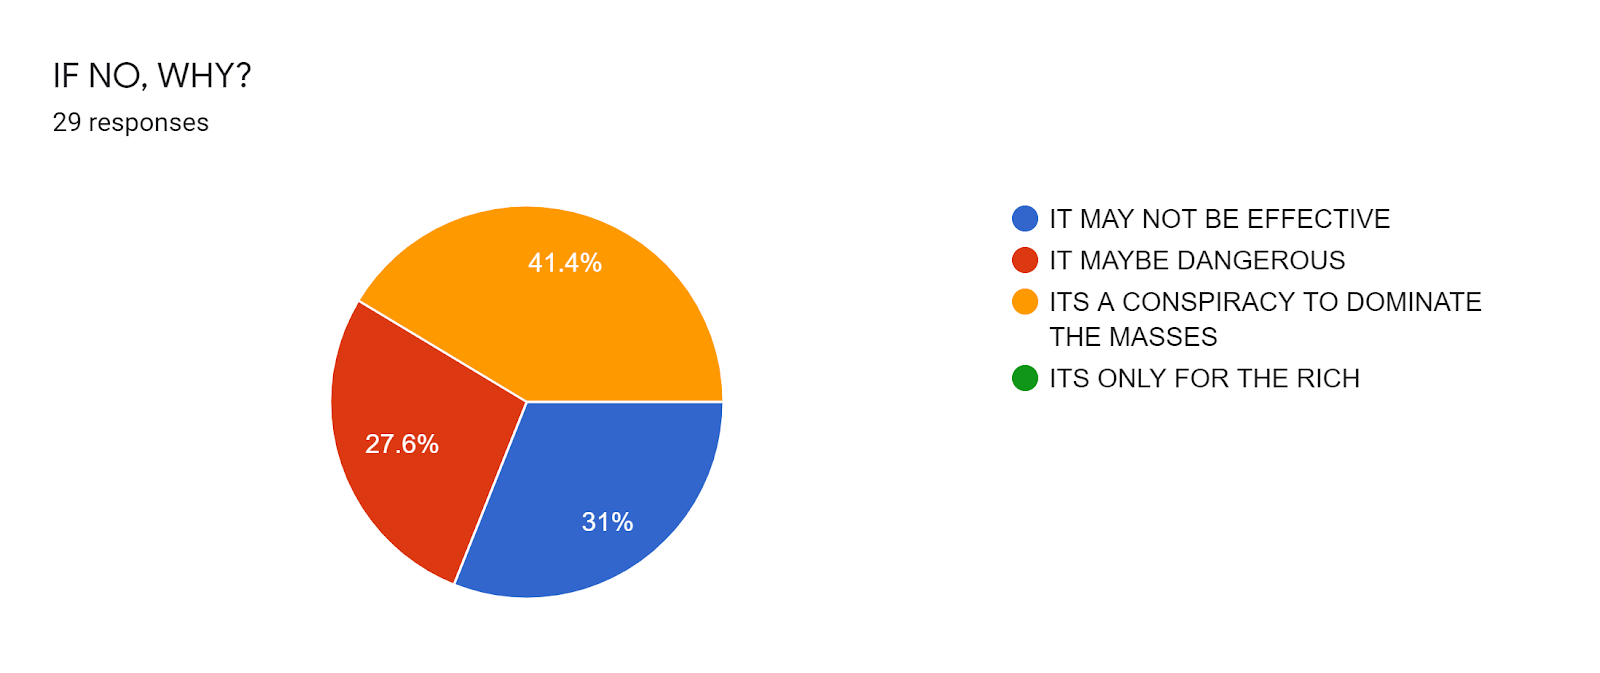 Forms response chart. Question title: IF NO, WHY?. Number of responses: 29 responses.